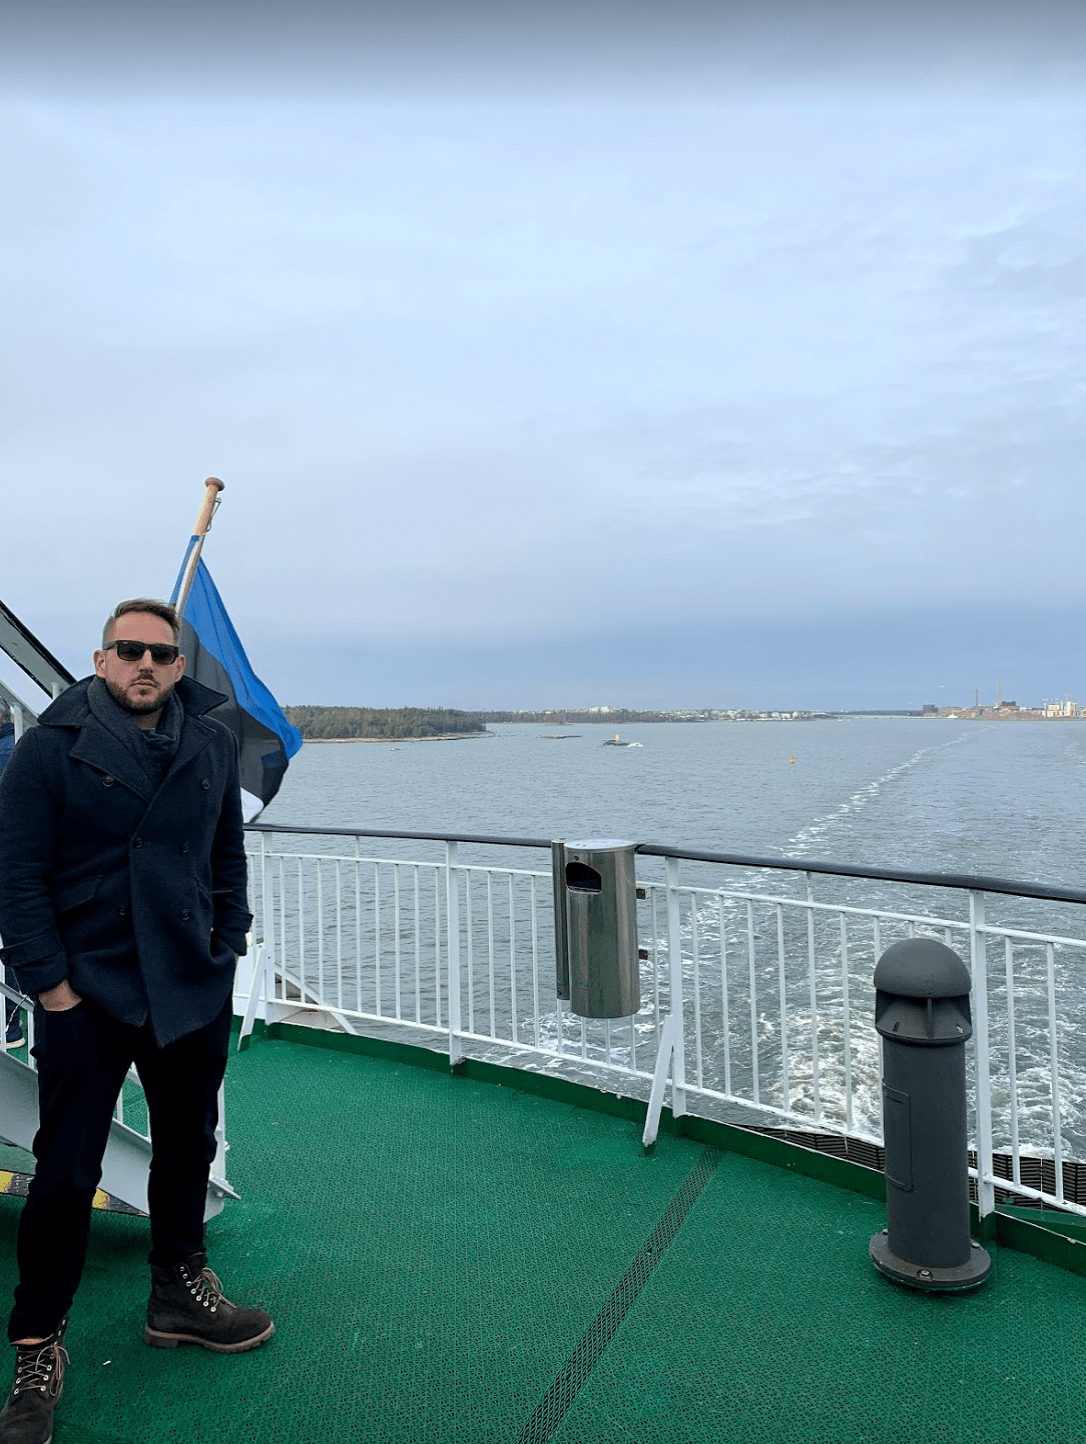 Ferry from Helsinki to Tallinn, Estonia